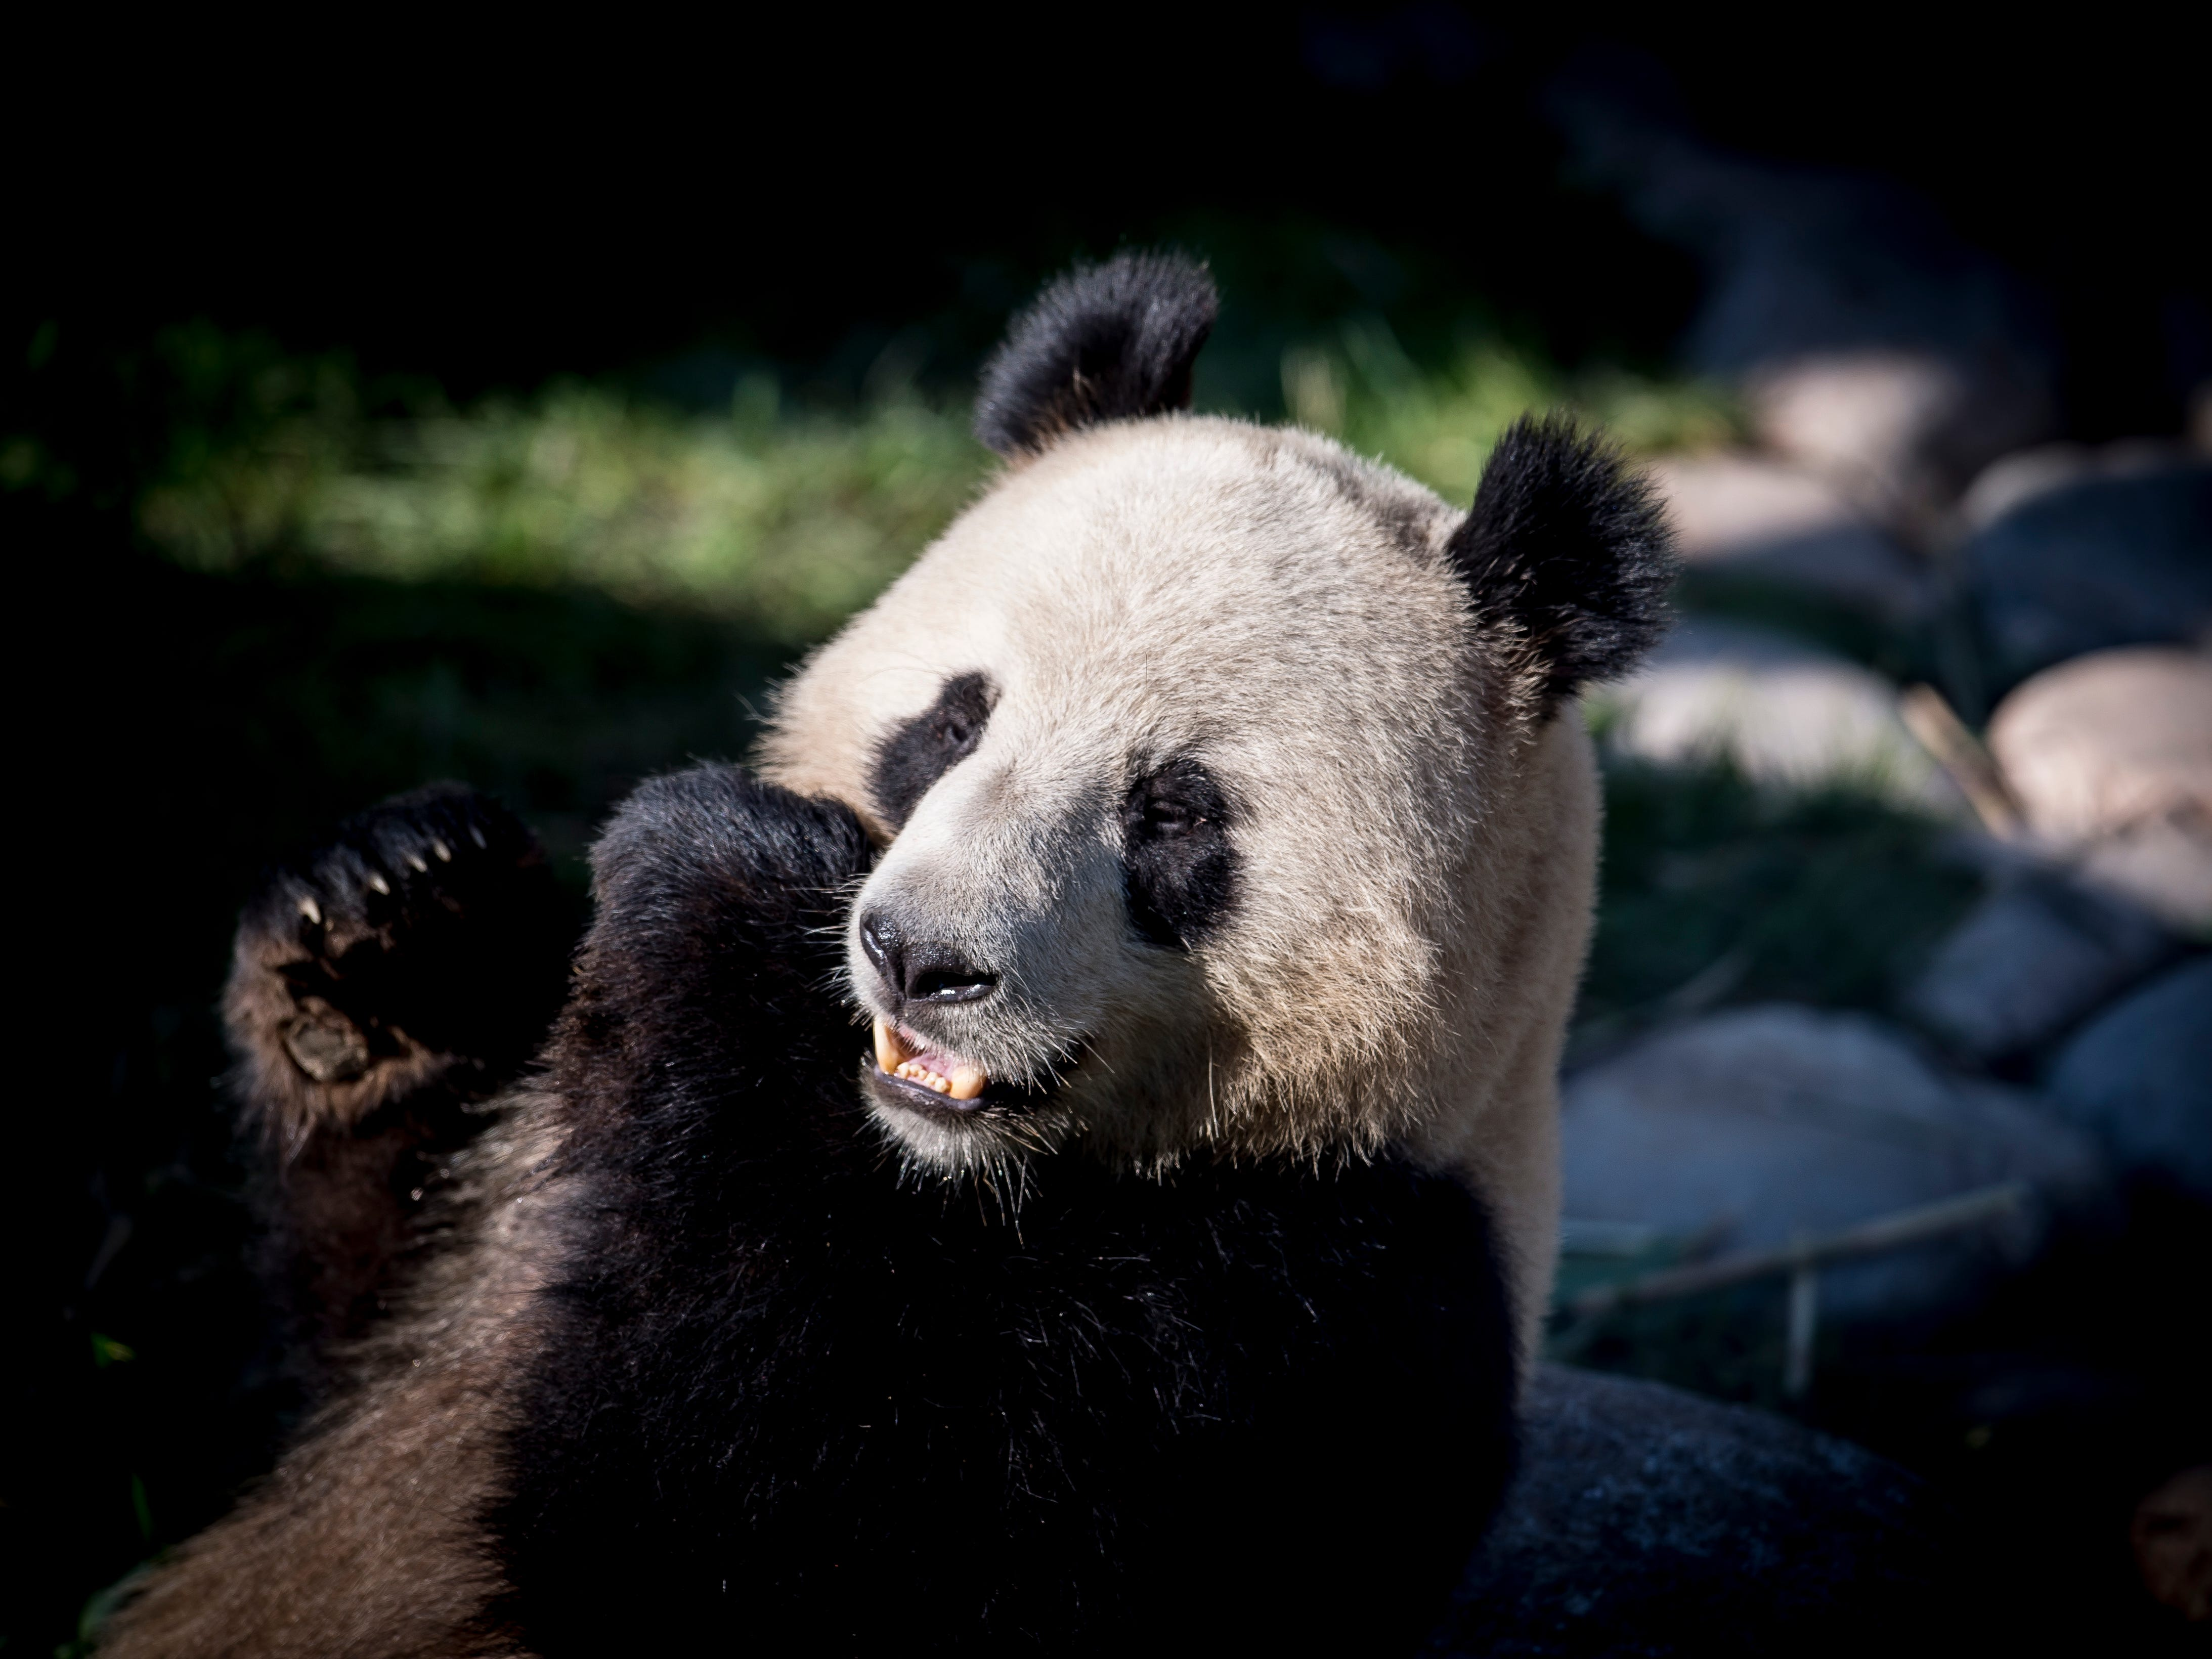 """This is the panda 'Xing Er' in the new enclosure in Copenhagen Zoo, Wednesday, April 10, 2019. Denmark's Queen Margrethe opened a newly built, $24.2-million enclosure at Copenhagen's zoo for two freshly arrived occupants: a pair of black-and-white bears on loan from China as the Scandinavian nation becomes part of Beijing's so-called """"panda diplomacy."""""""